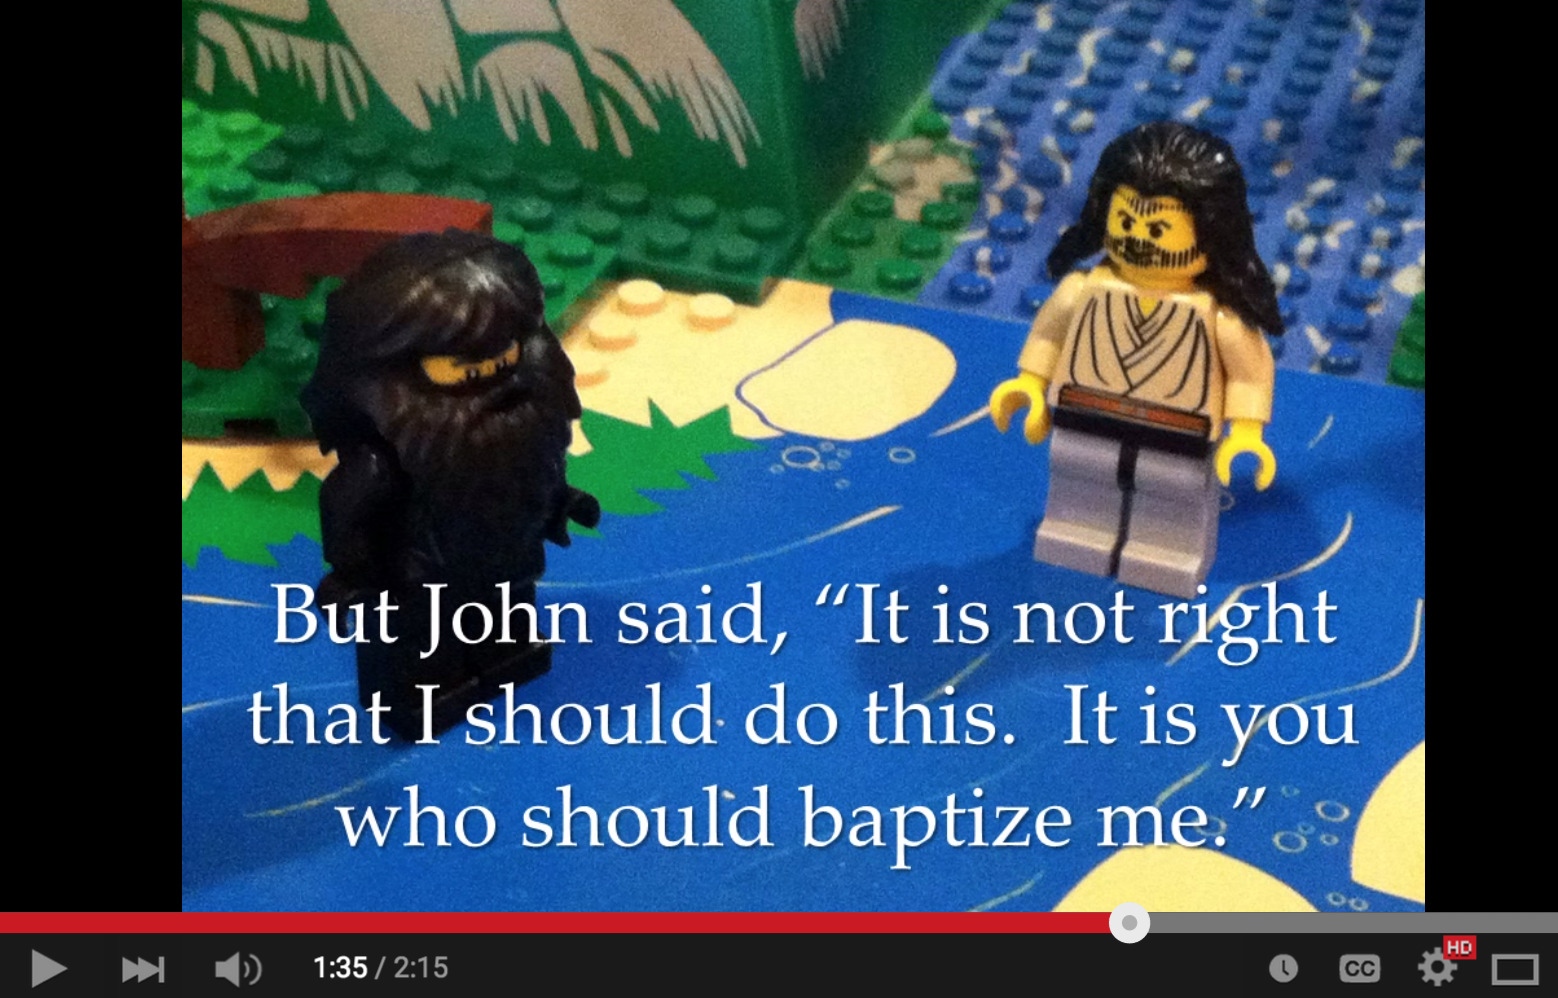 How to Make Bible Lego Videos with Kids